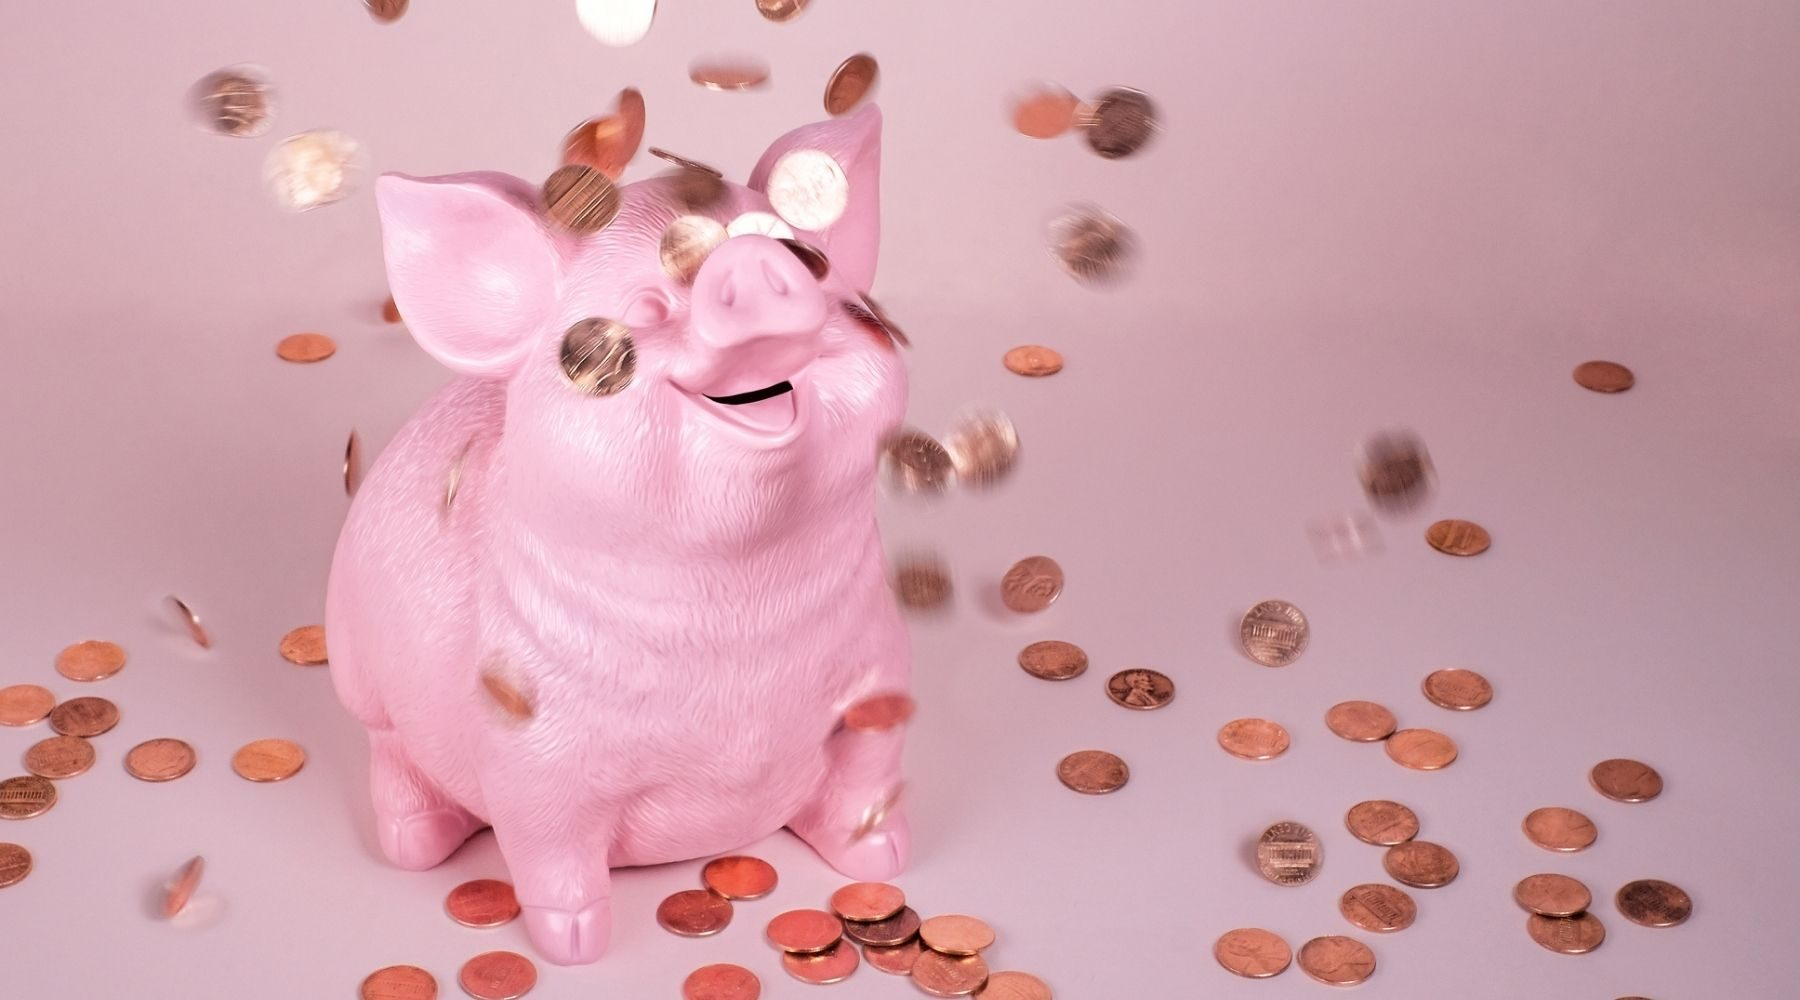 Piggy bank on a pink background, with coins falling around.